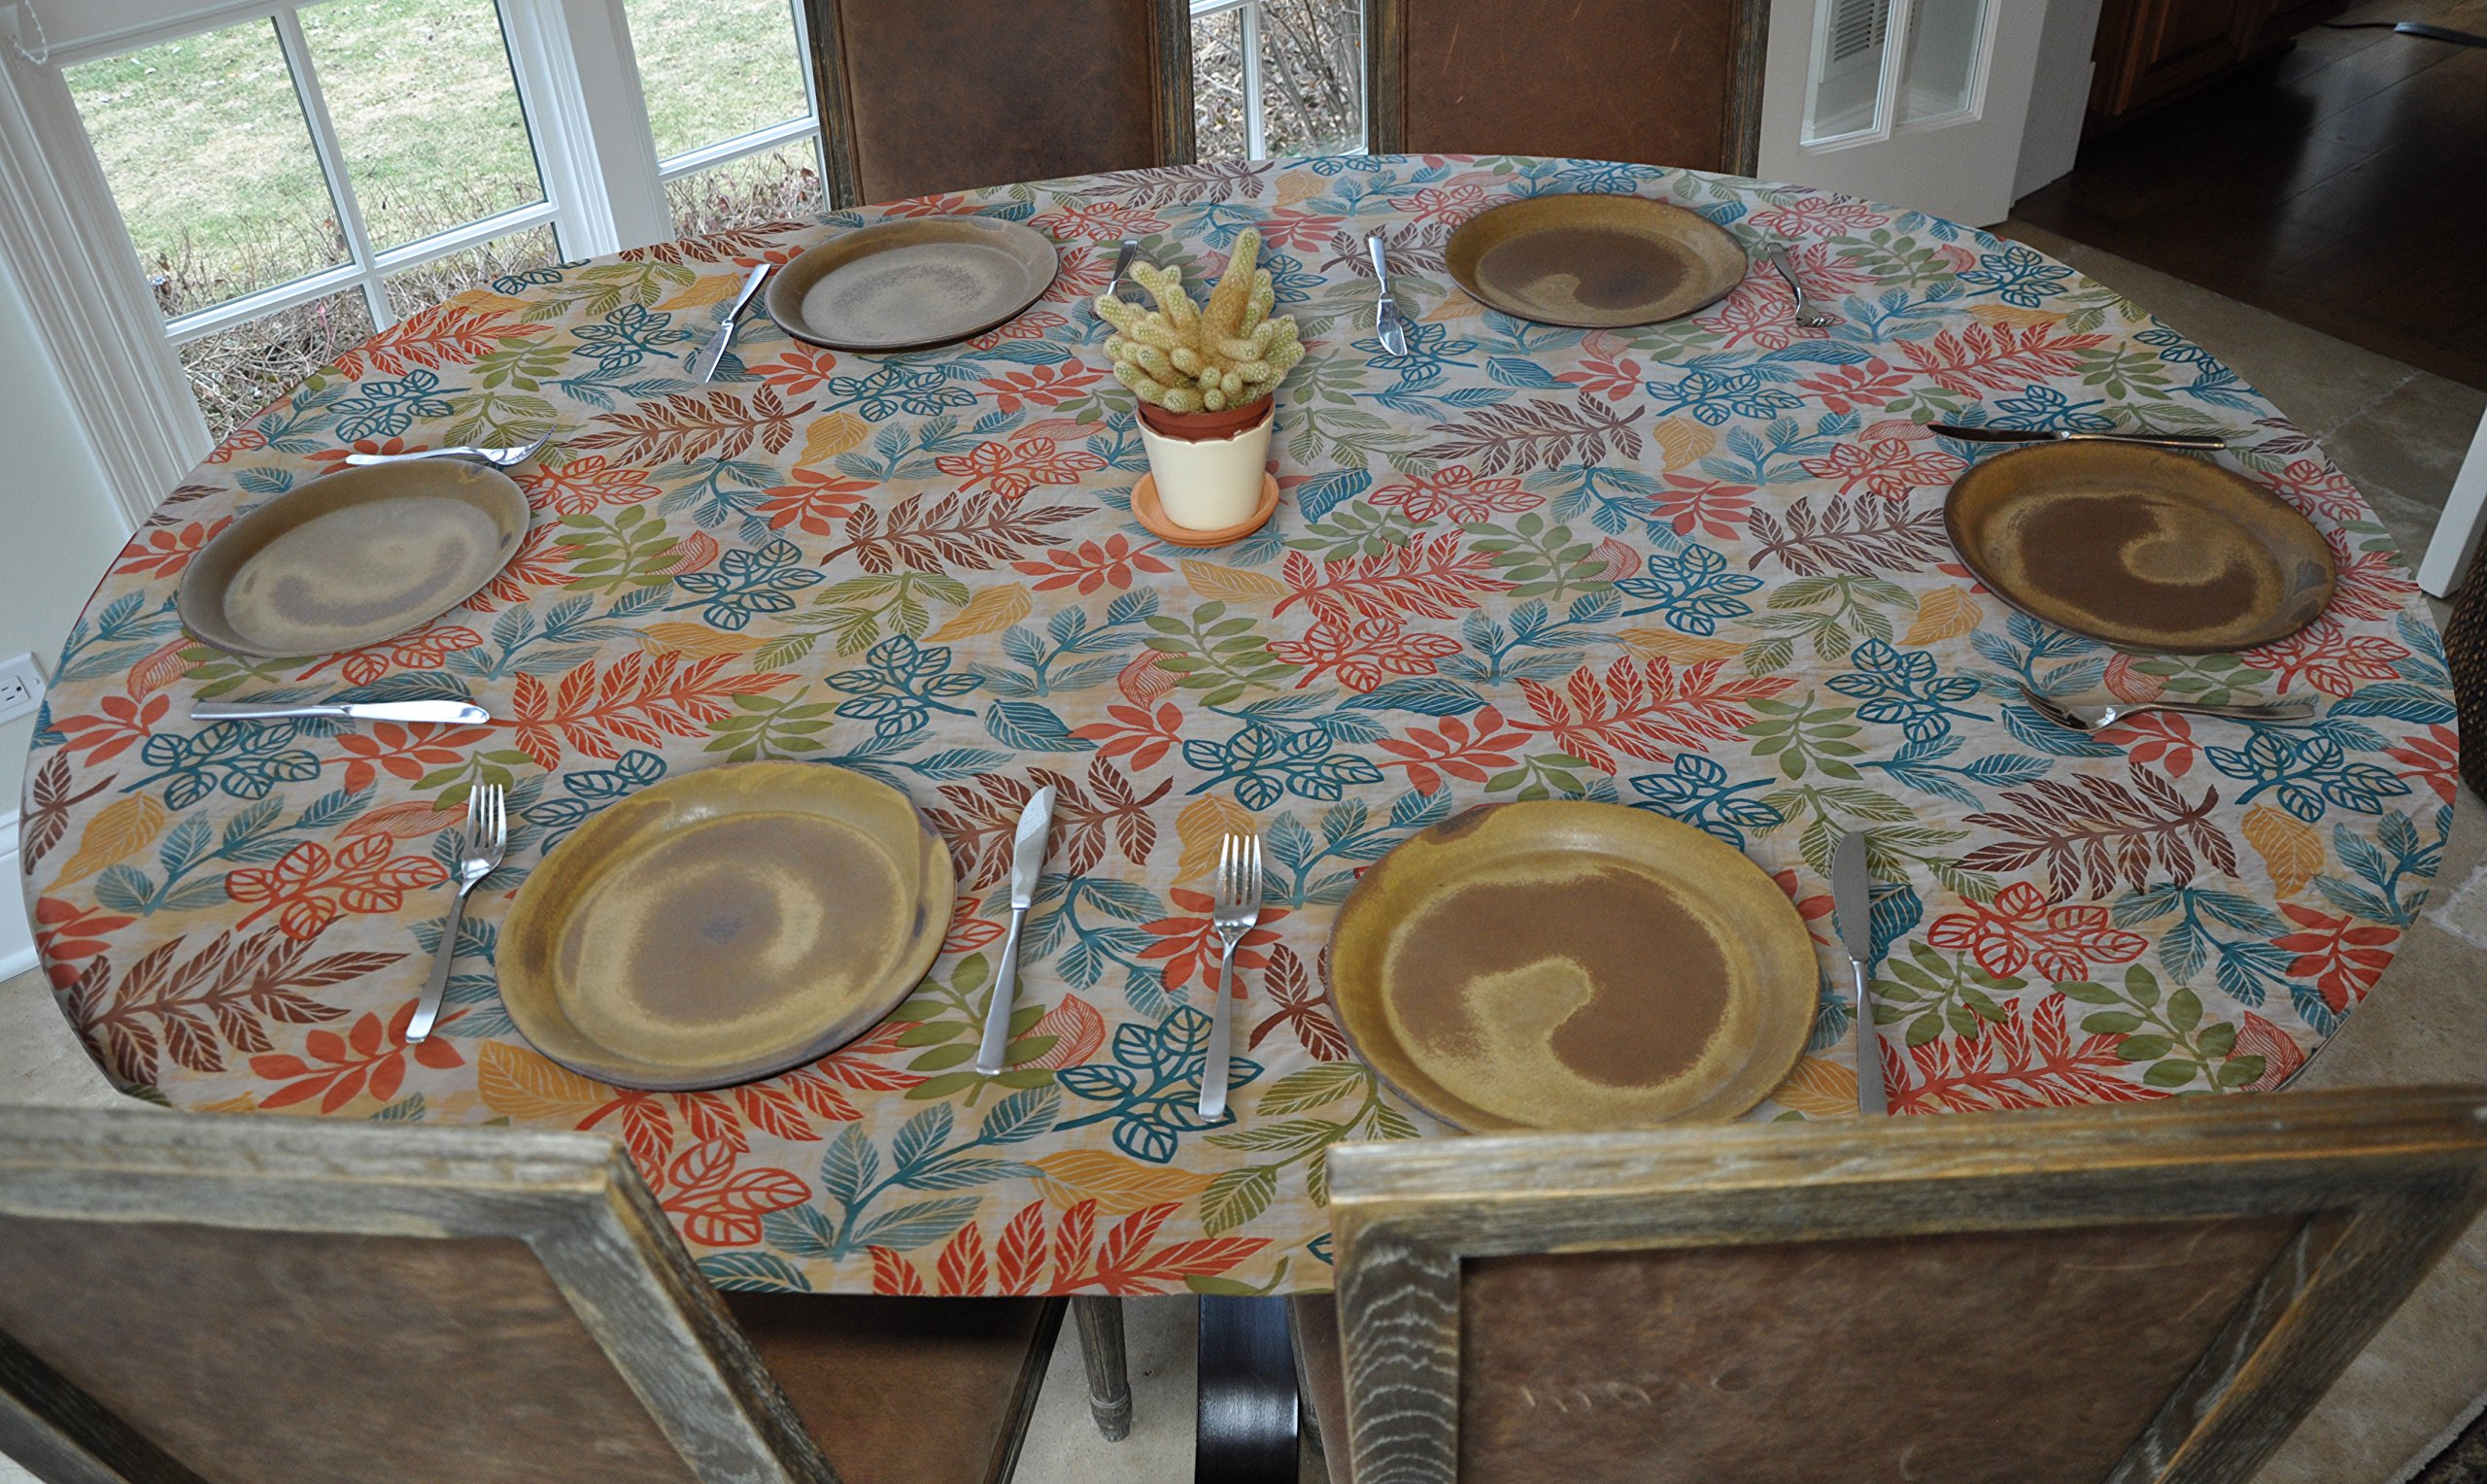 "Elastic Edged Flannel Backed Vinyl Fitted Table Cover - BOTANICAL Pattern - Oblong/Oval - Fits tables up to 48"" x 68"""